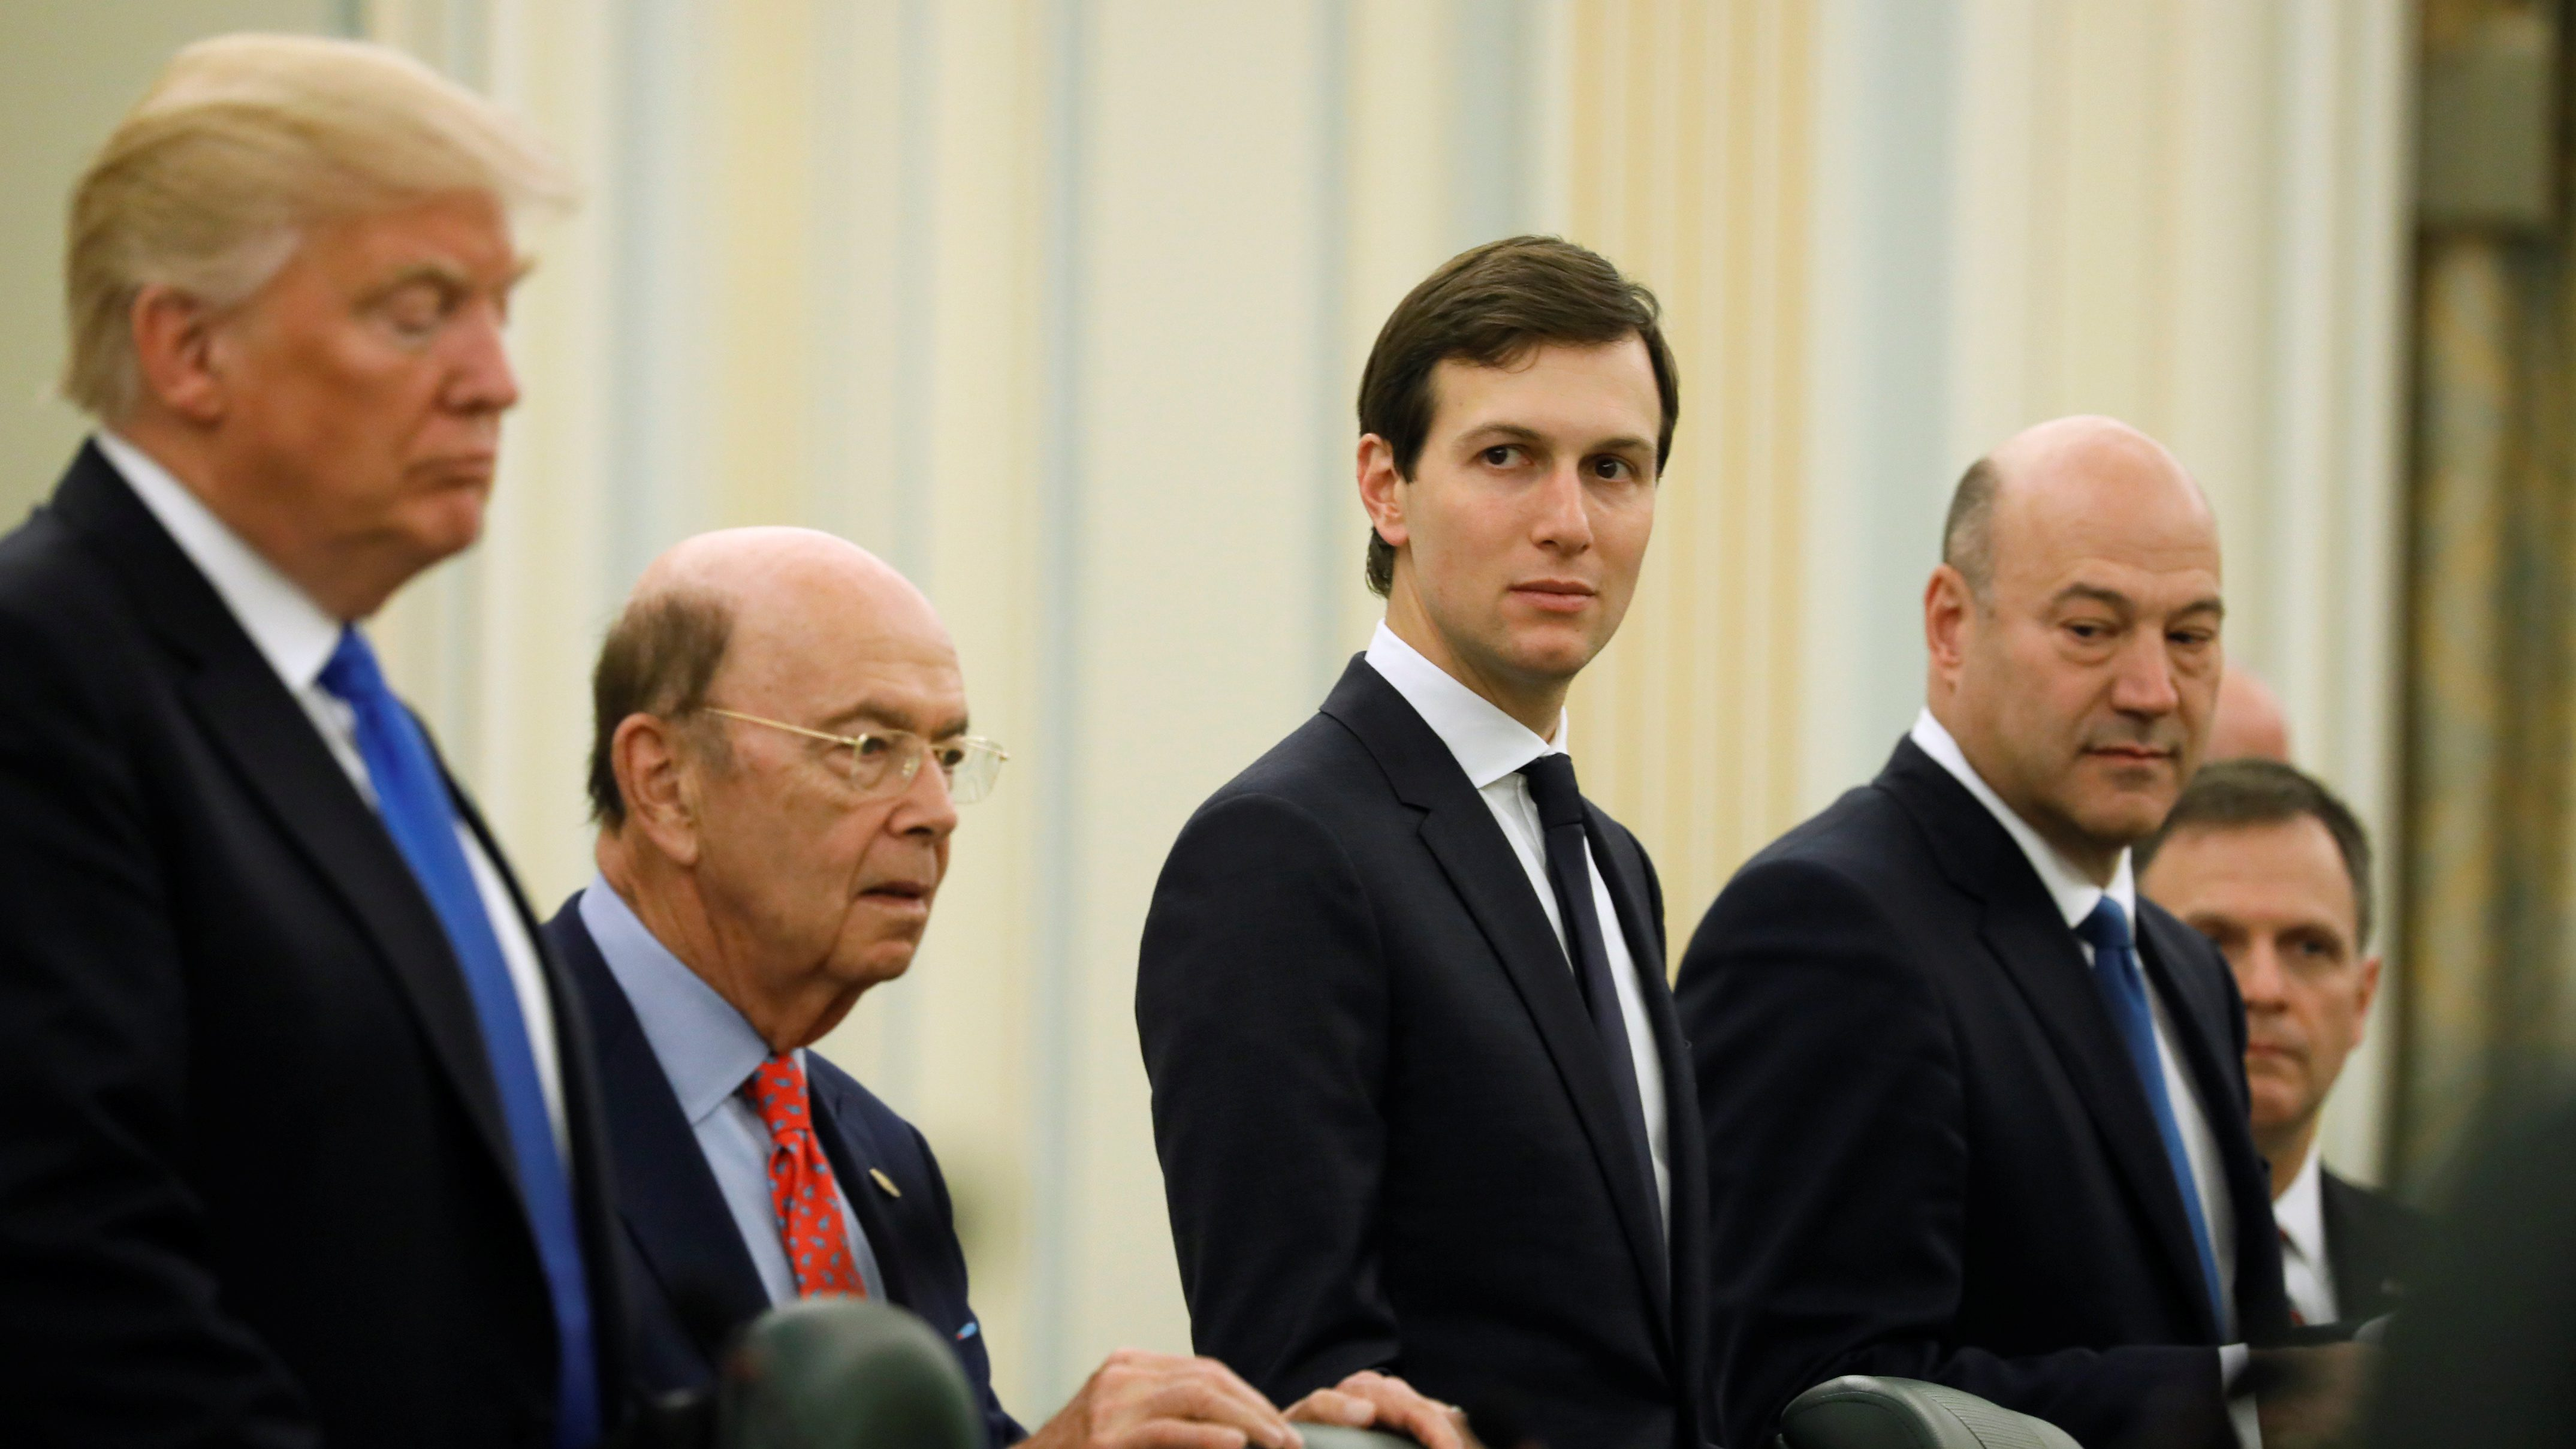 White House senior advisor Jared Kushner (C) sits alongside U.S. President Donald Trump (L), Commerce Secretary Wilbur Ross (2nd L) and chief economic advisor Gary Cohn (R) as they prepare to meet with Saudi Arabia's King Salman bin Abdulaziz Al Saud and the Saudi delegation at the Royal Court in Riyadh, Saudi Arabia May 20, 2017.  - RC1F32AC97C0